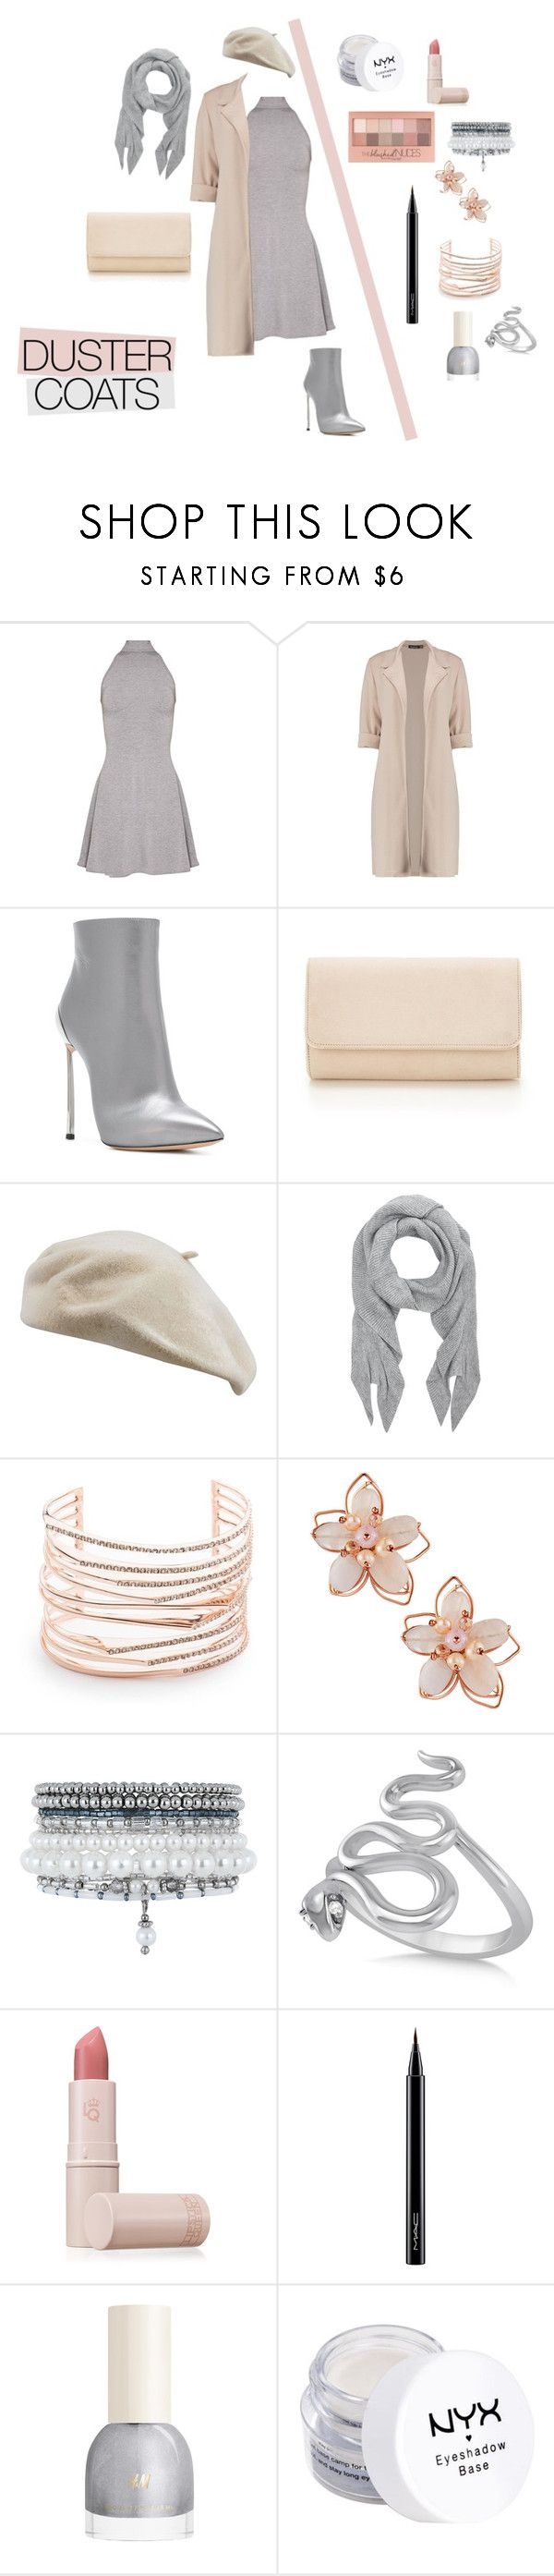 """Duster coats"" by sky-gem ❤ liked on Polyvore featuring Casadei, Accessorize, Alexis Bittar, NAKAMOL, Monsoon, Allurez, Maybelline, Lipstick Queen, MAC Cosmetics and NYX"